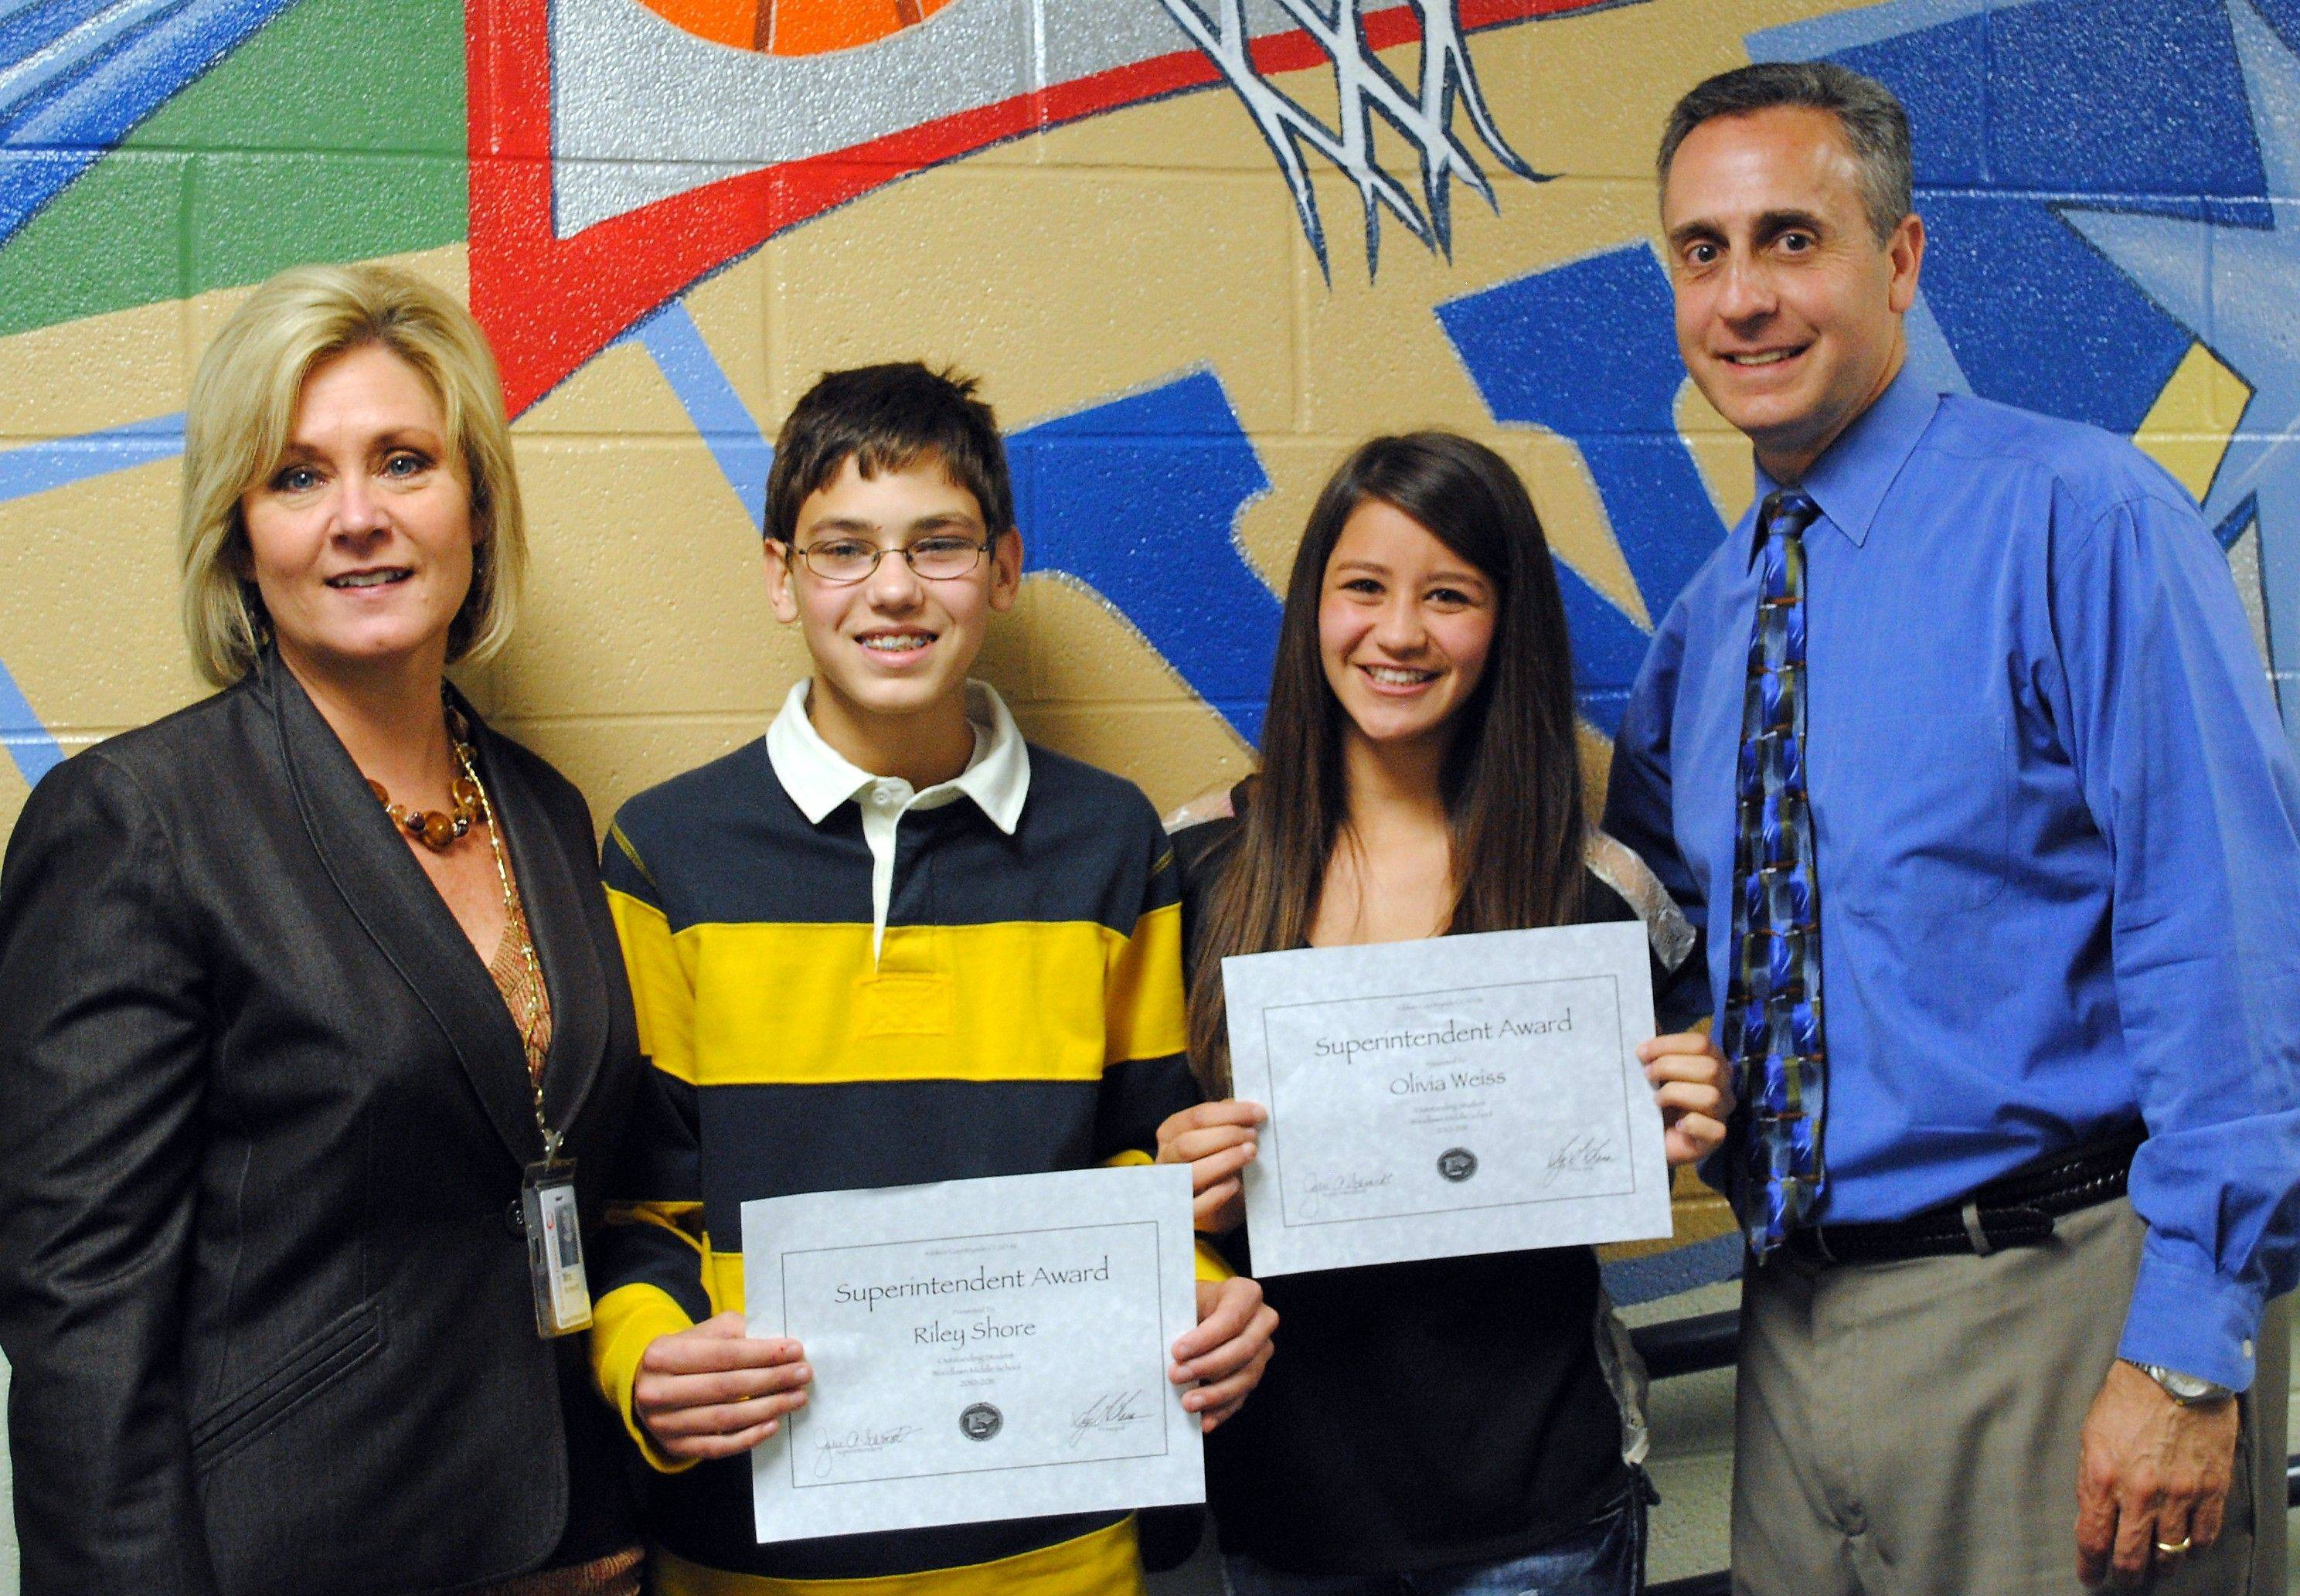 With District 96 Superintendent Julie Schmidt, from left, are Superintendent Award recipients, eighth-graders Riley Shore and Olivia Weiss and Woodlawn Middle School Principal Greg Grana.